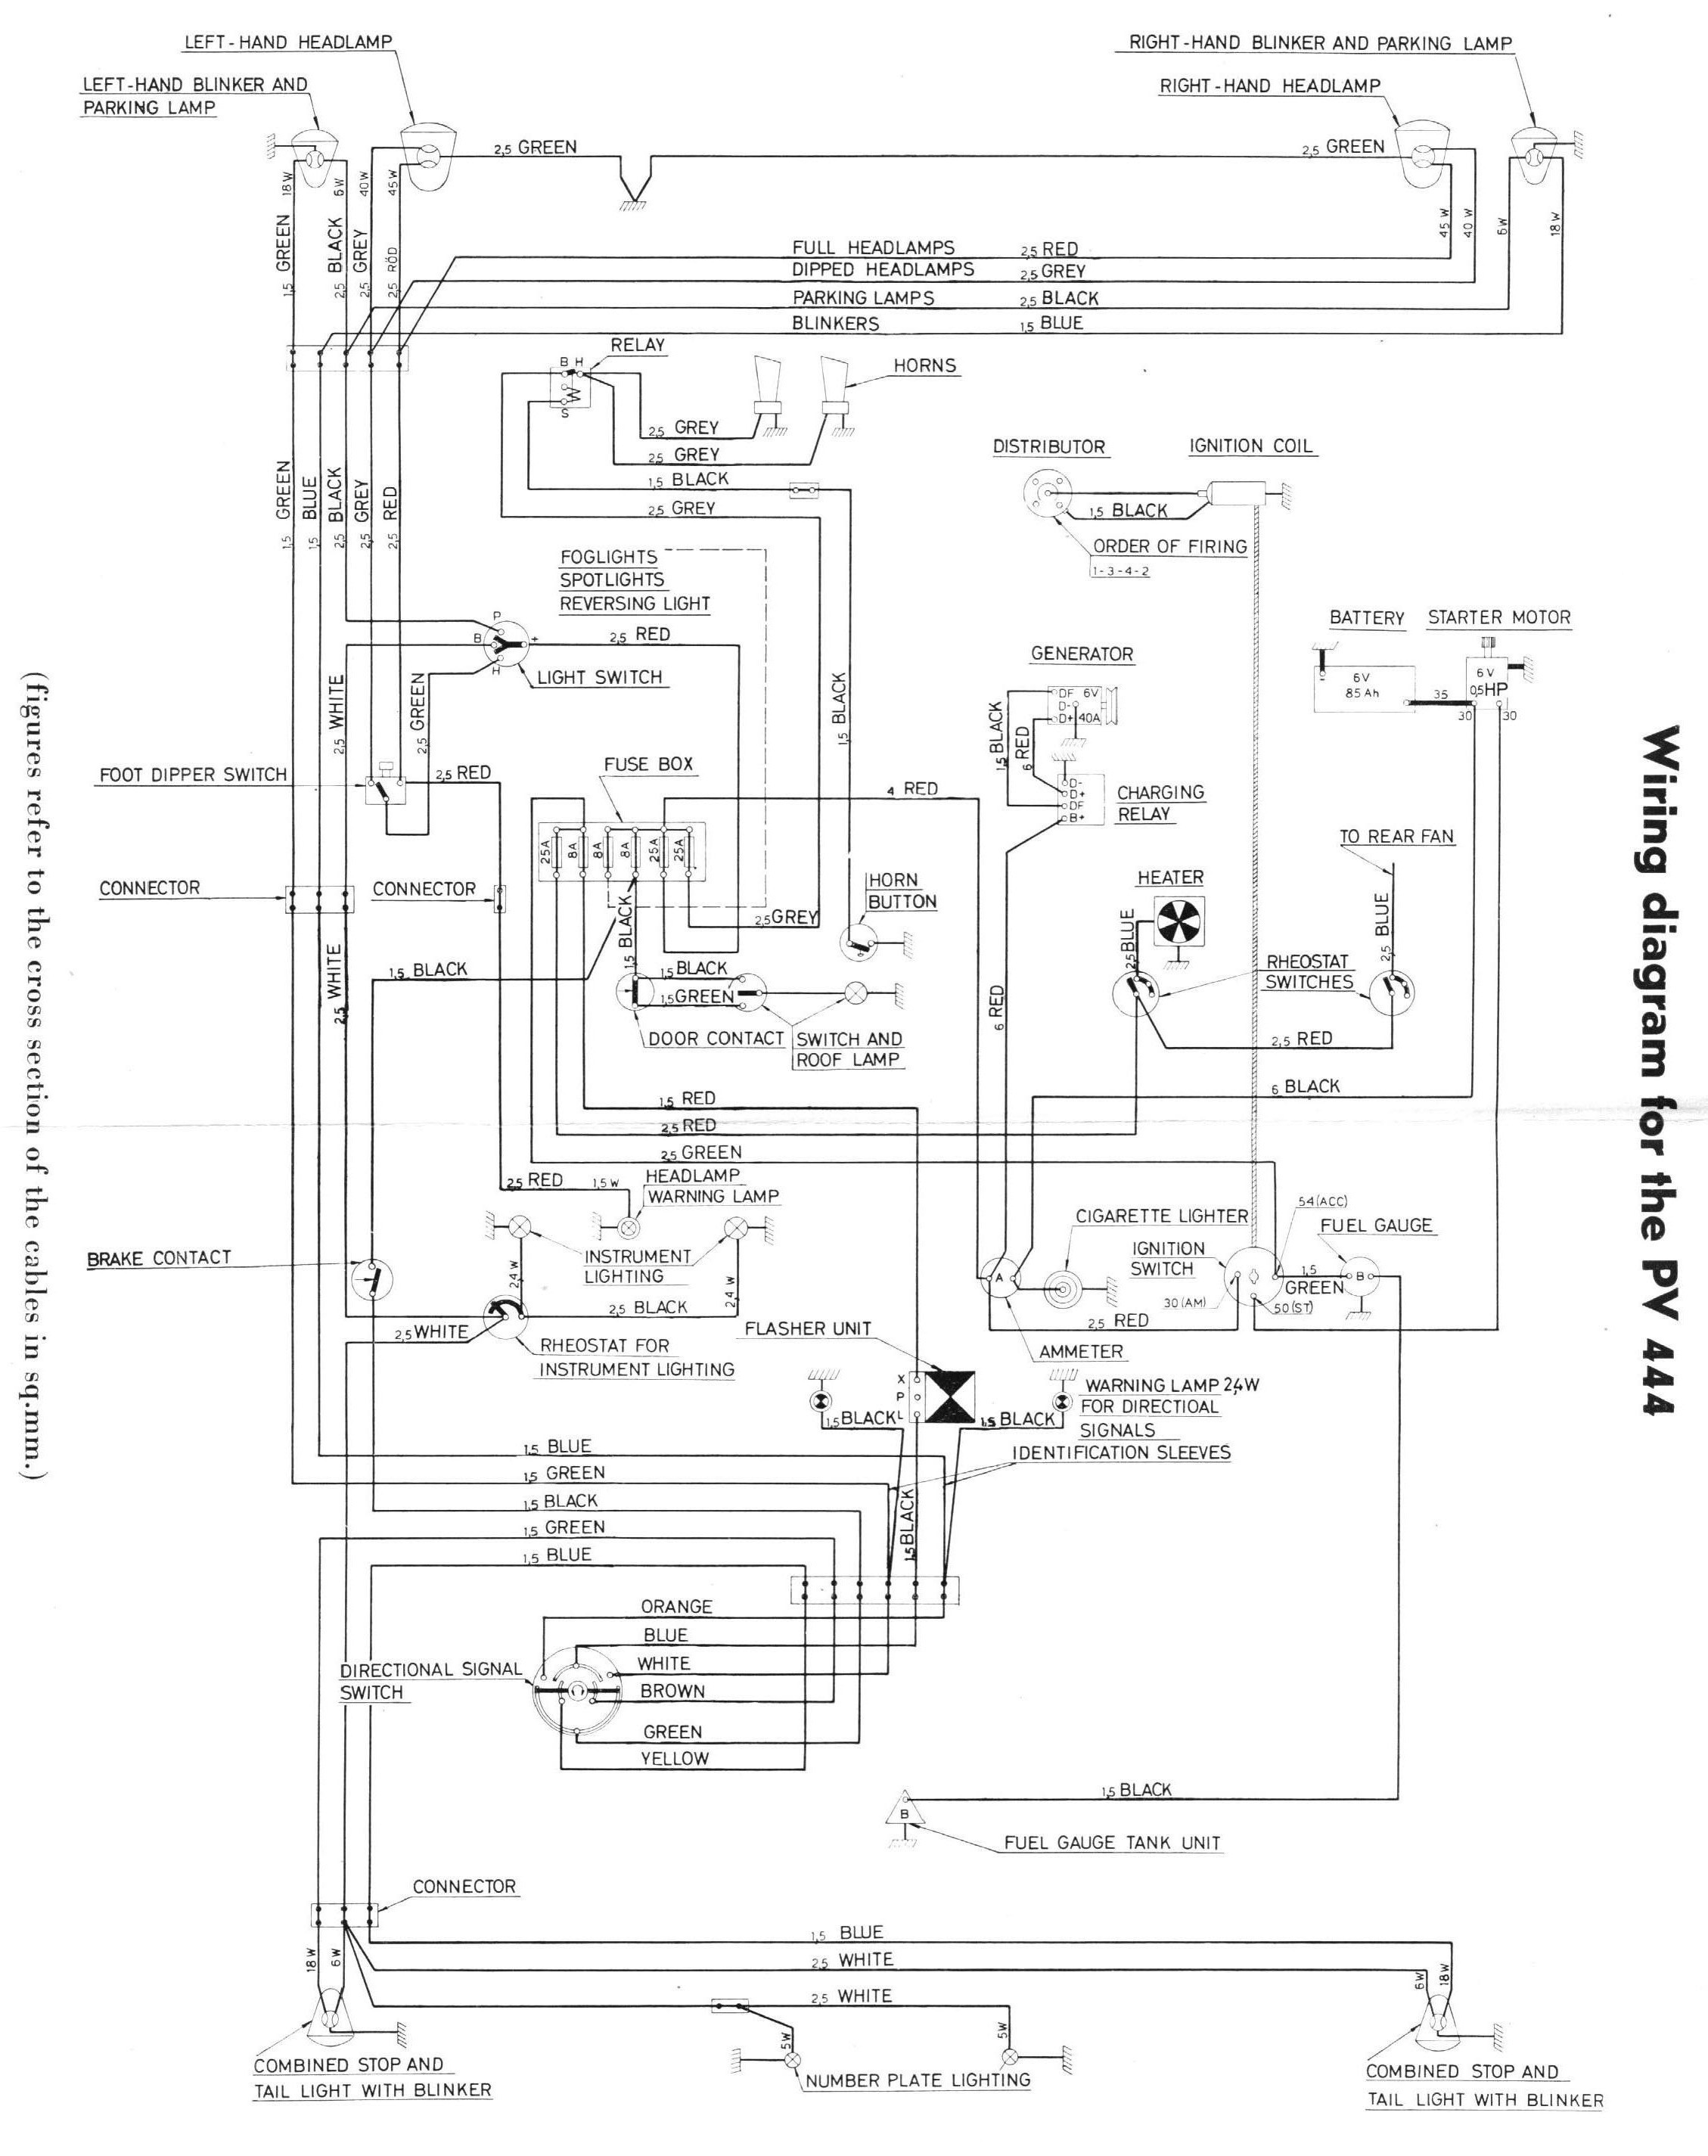 Invisible Fence Wiring Diagram Unique Wiring Diagram Image - Invisible fence wiring diagram